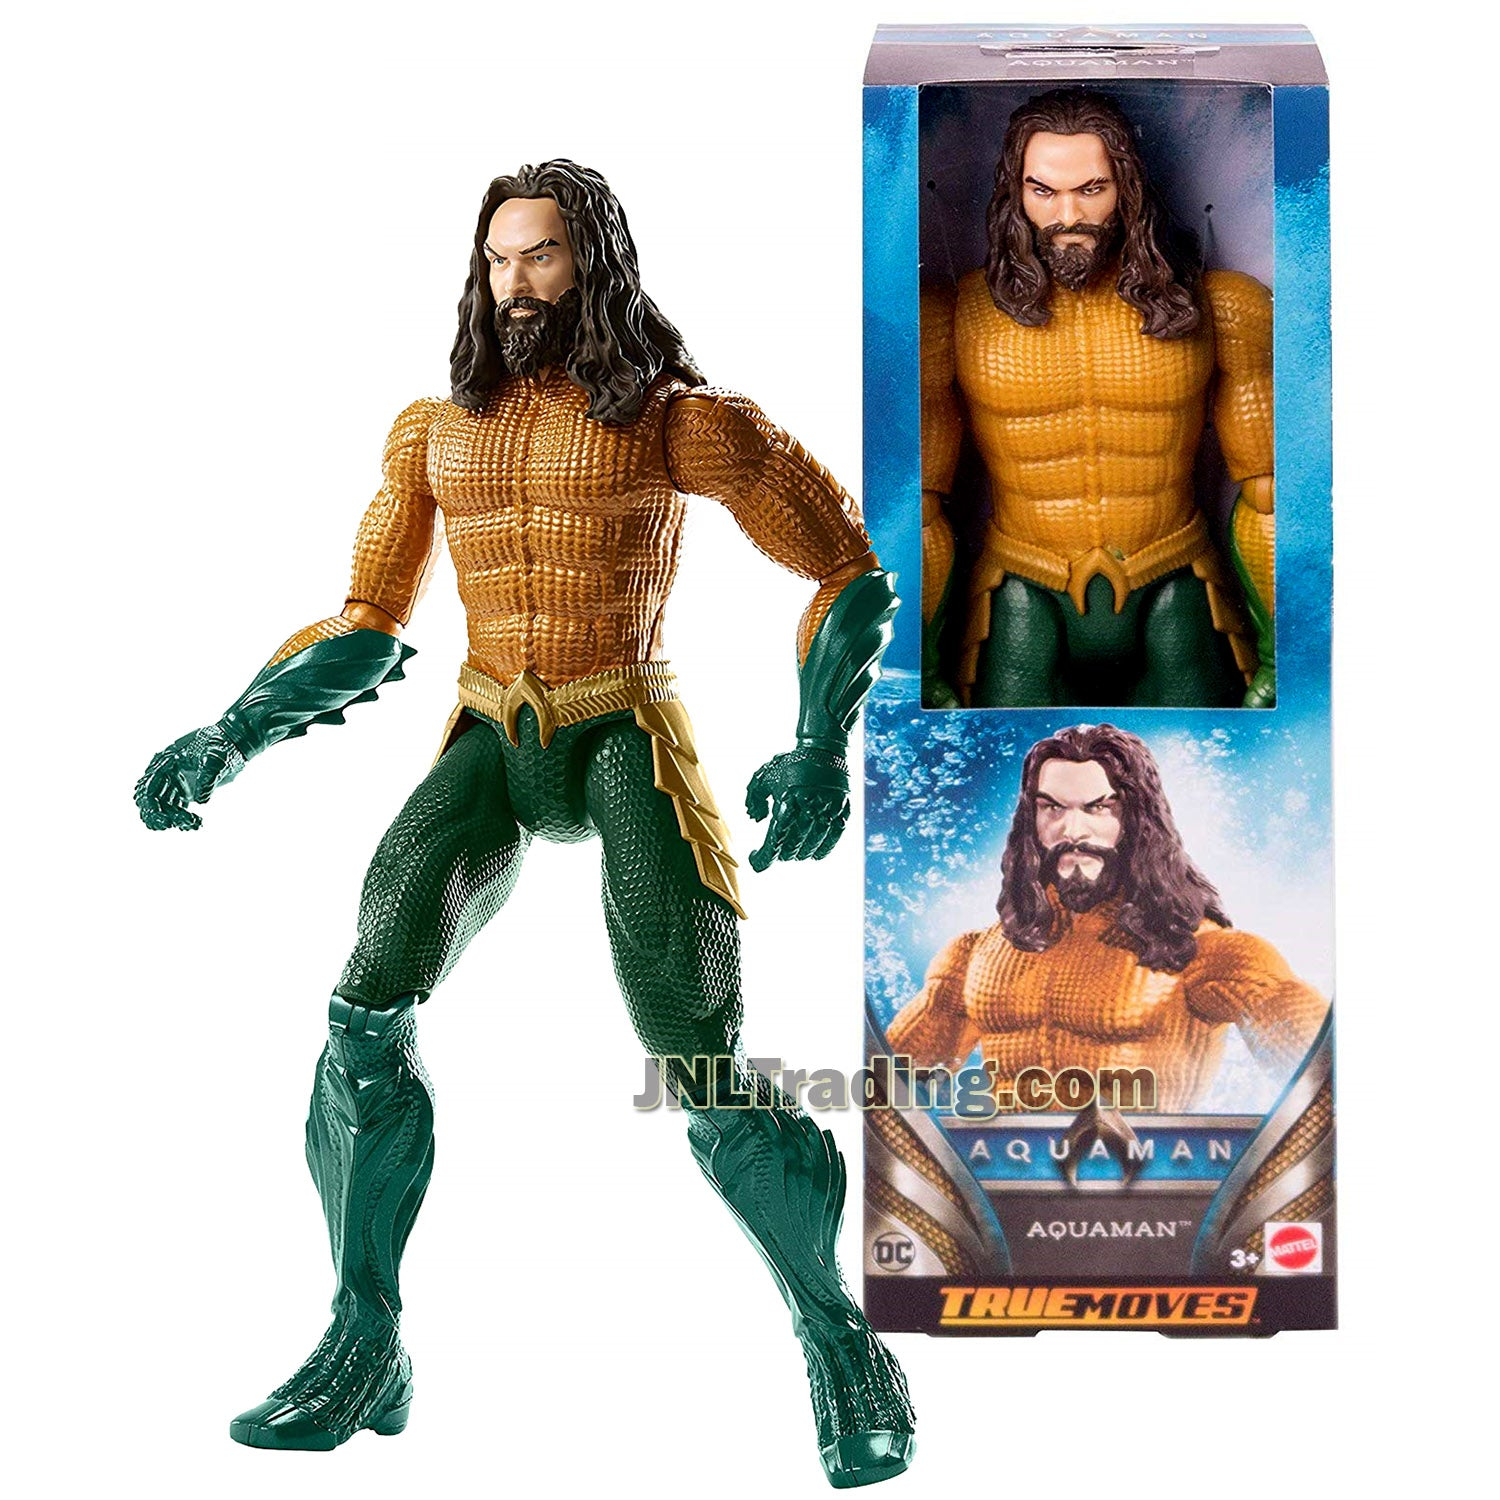 Dc Comics Year 2018 Aquaman Series 12 Inch Tall Figure - Aquaman Fxf91 With 11 Points Of Articulation